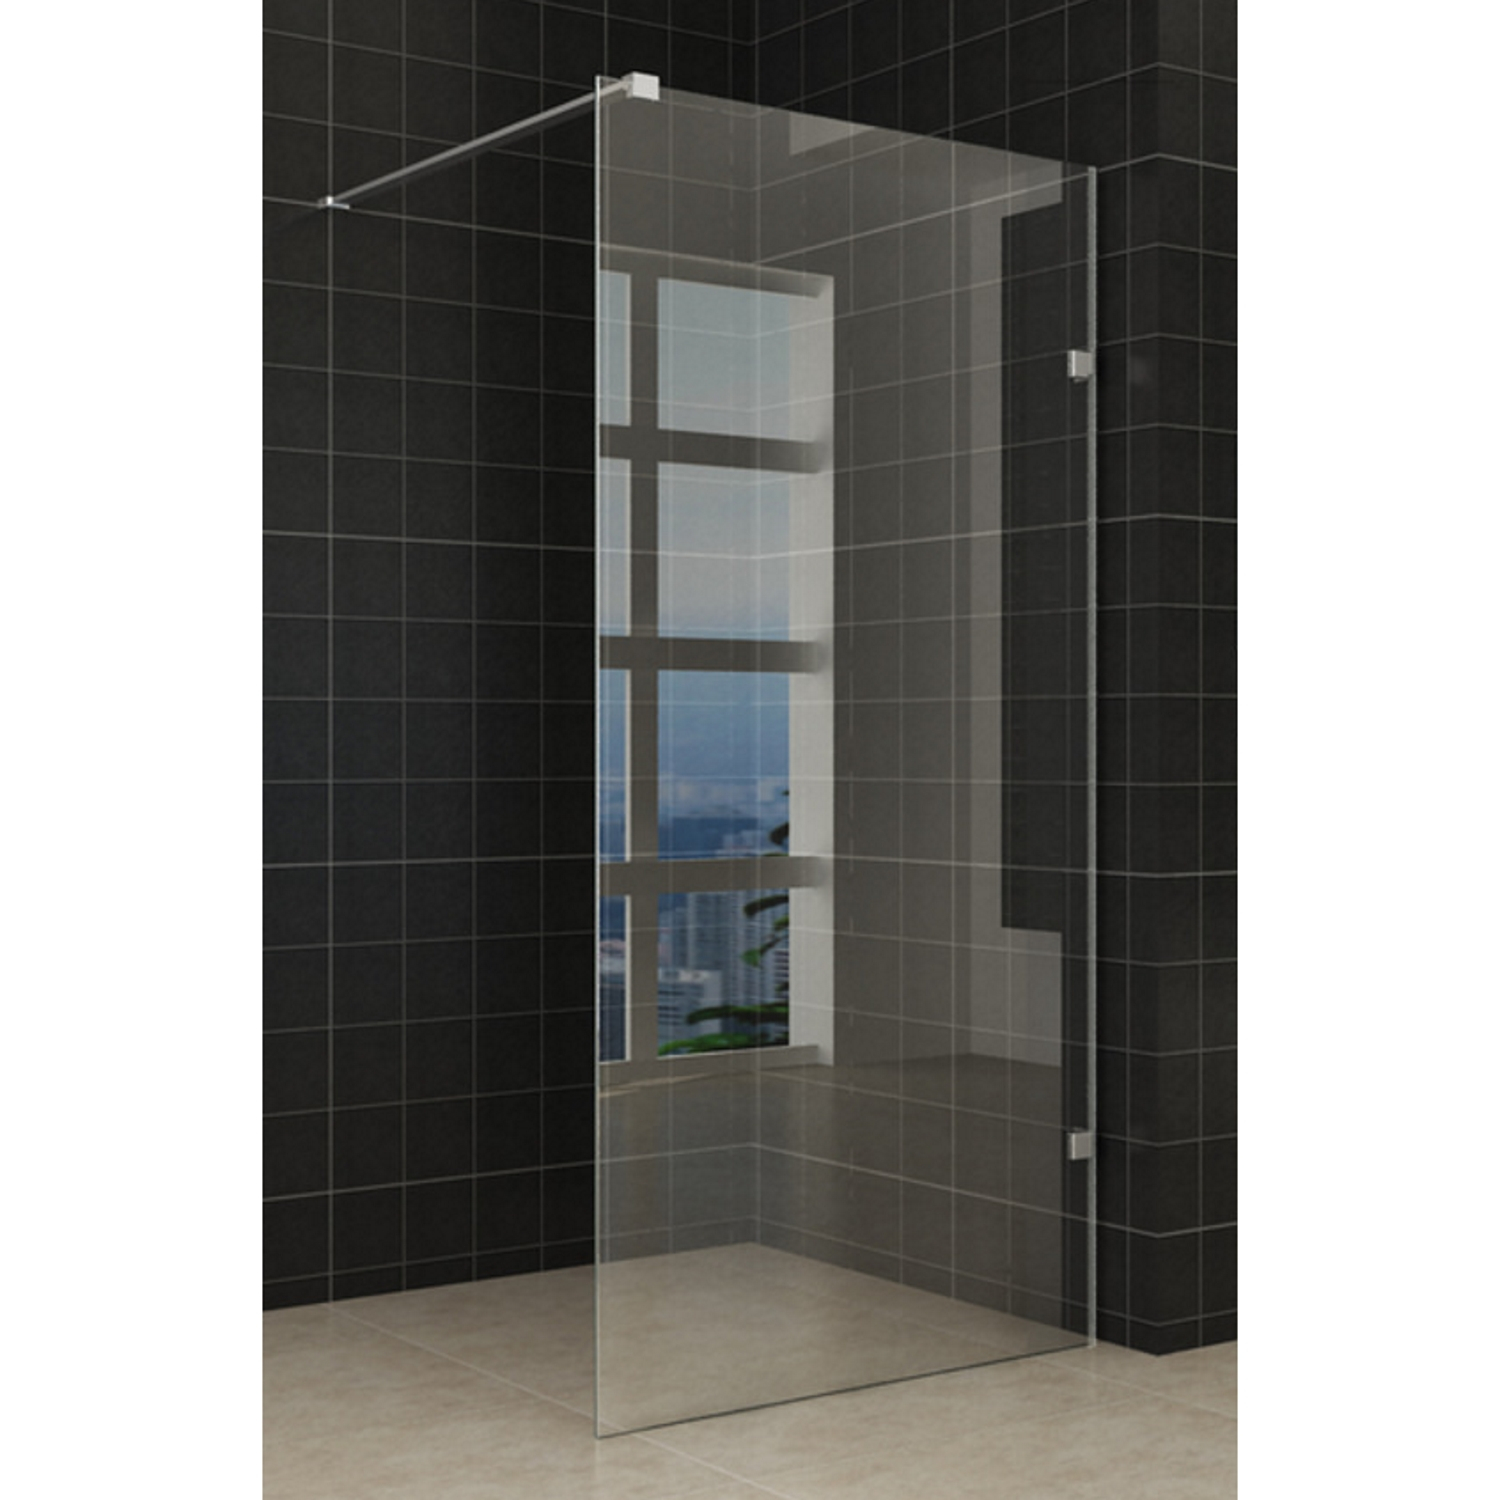 Douche 67516 BWS Edge Douchewand Profielloos 80×200 cm 8 mm NANO coating